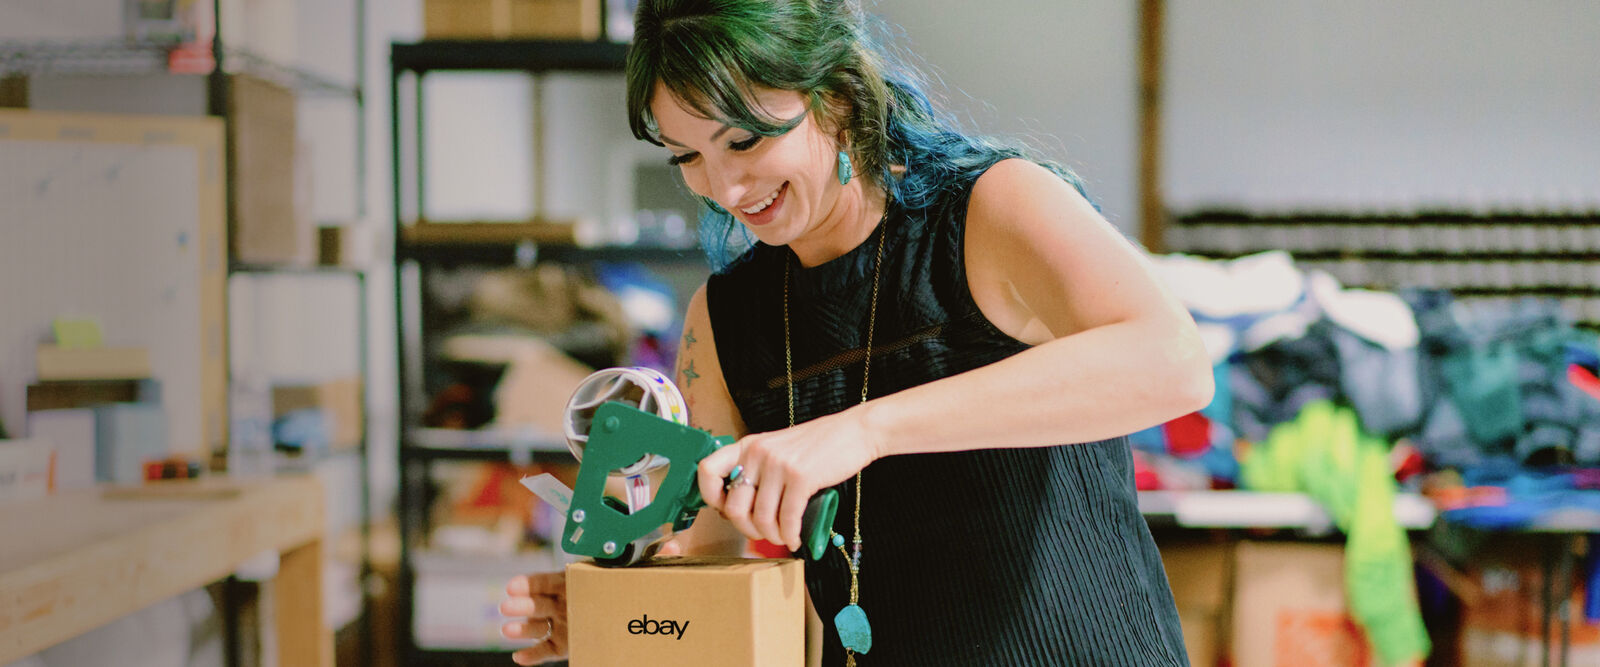 Grow your business with eBay